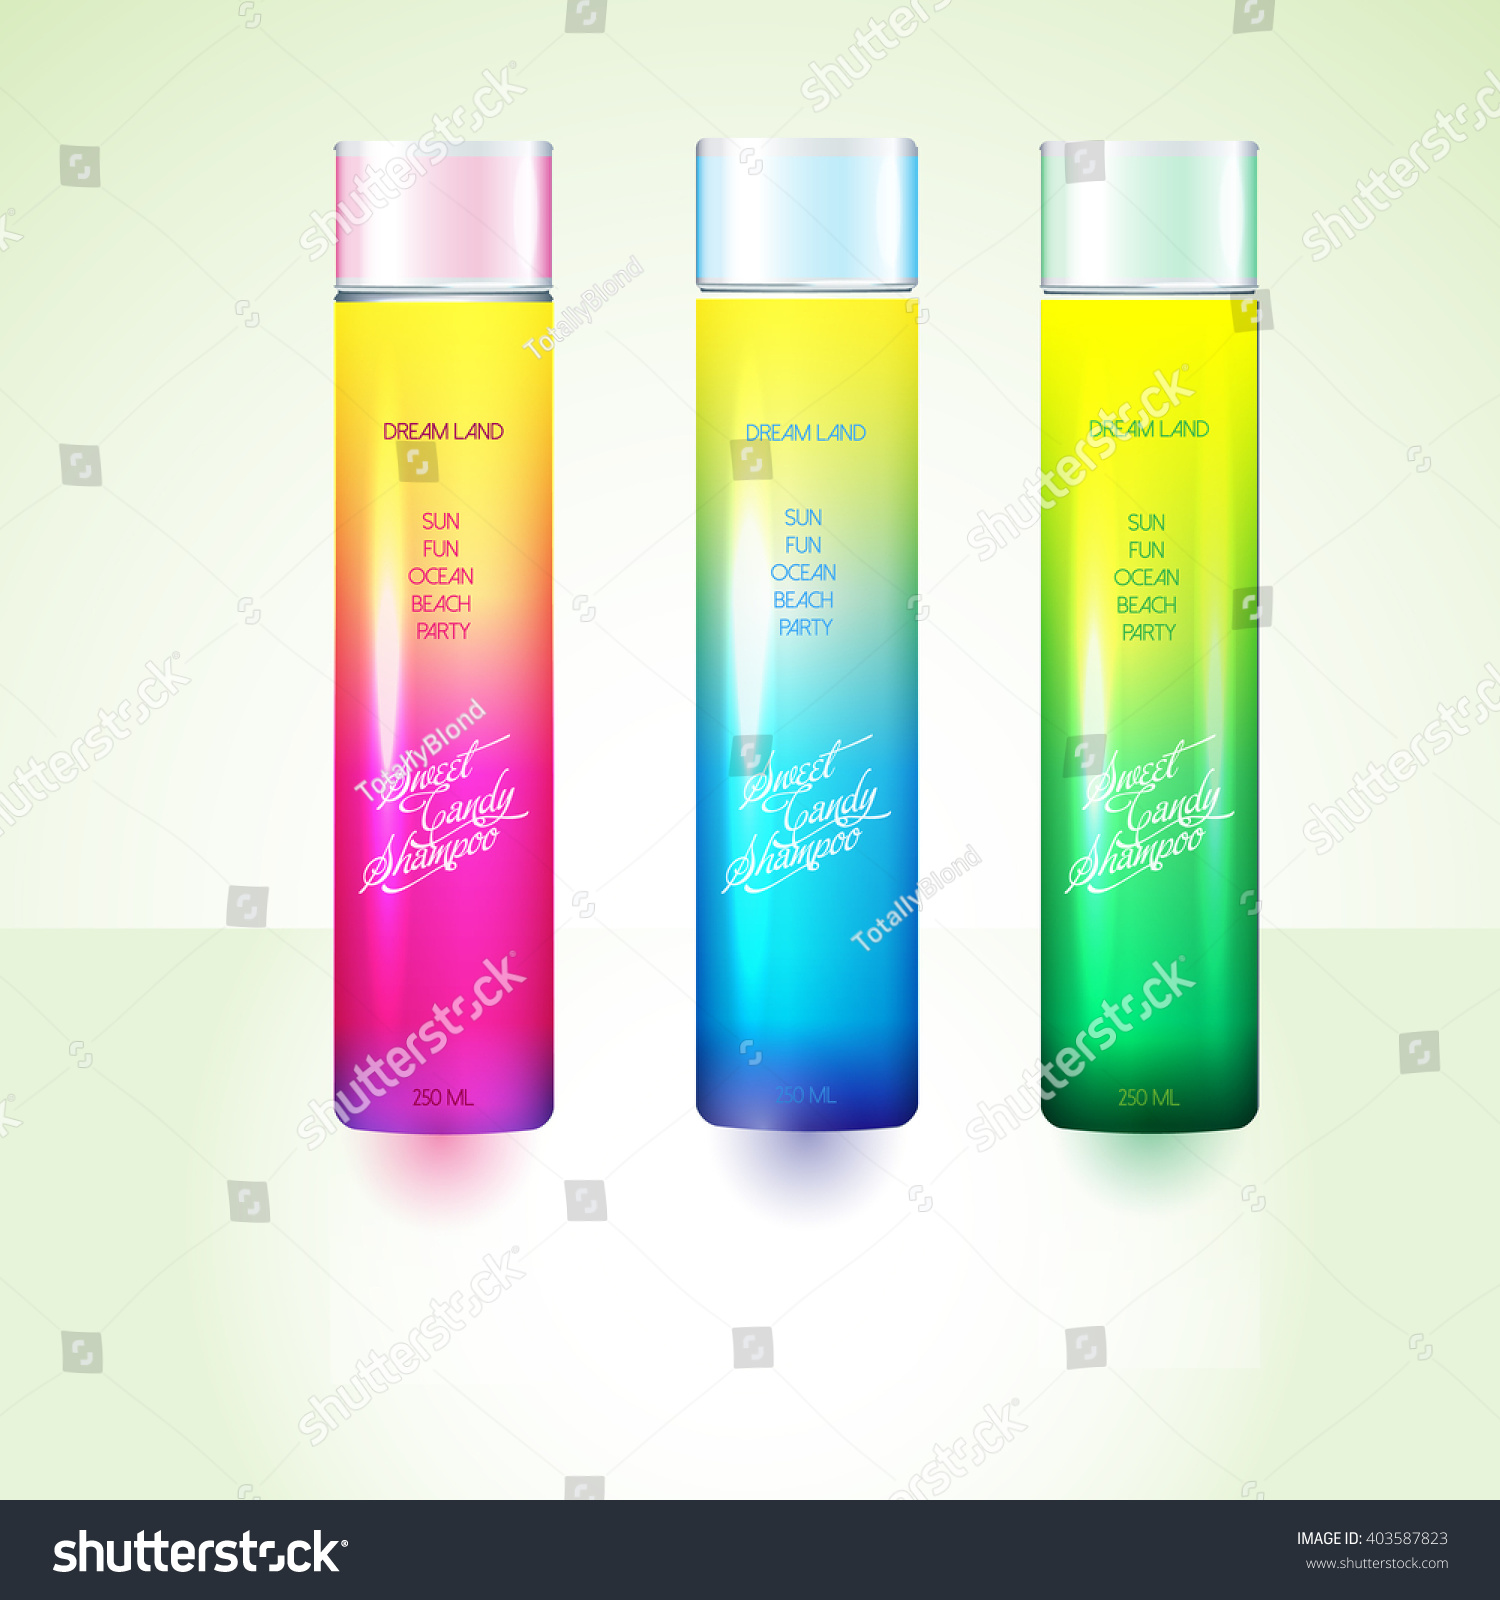 Emejing Product Label Design Ideas Images Decorating Interior Stock Vector  Package Design Template Bottles With Sample